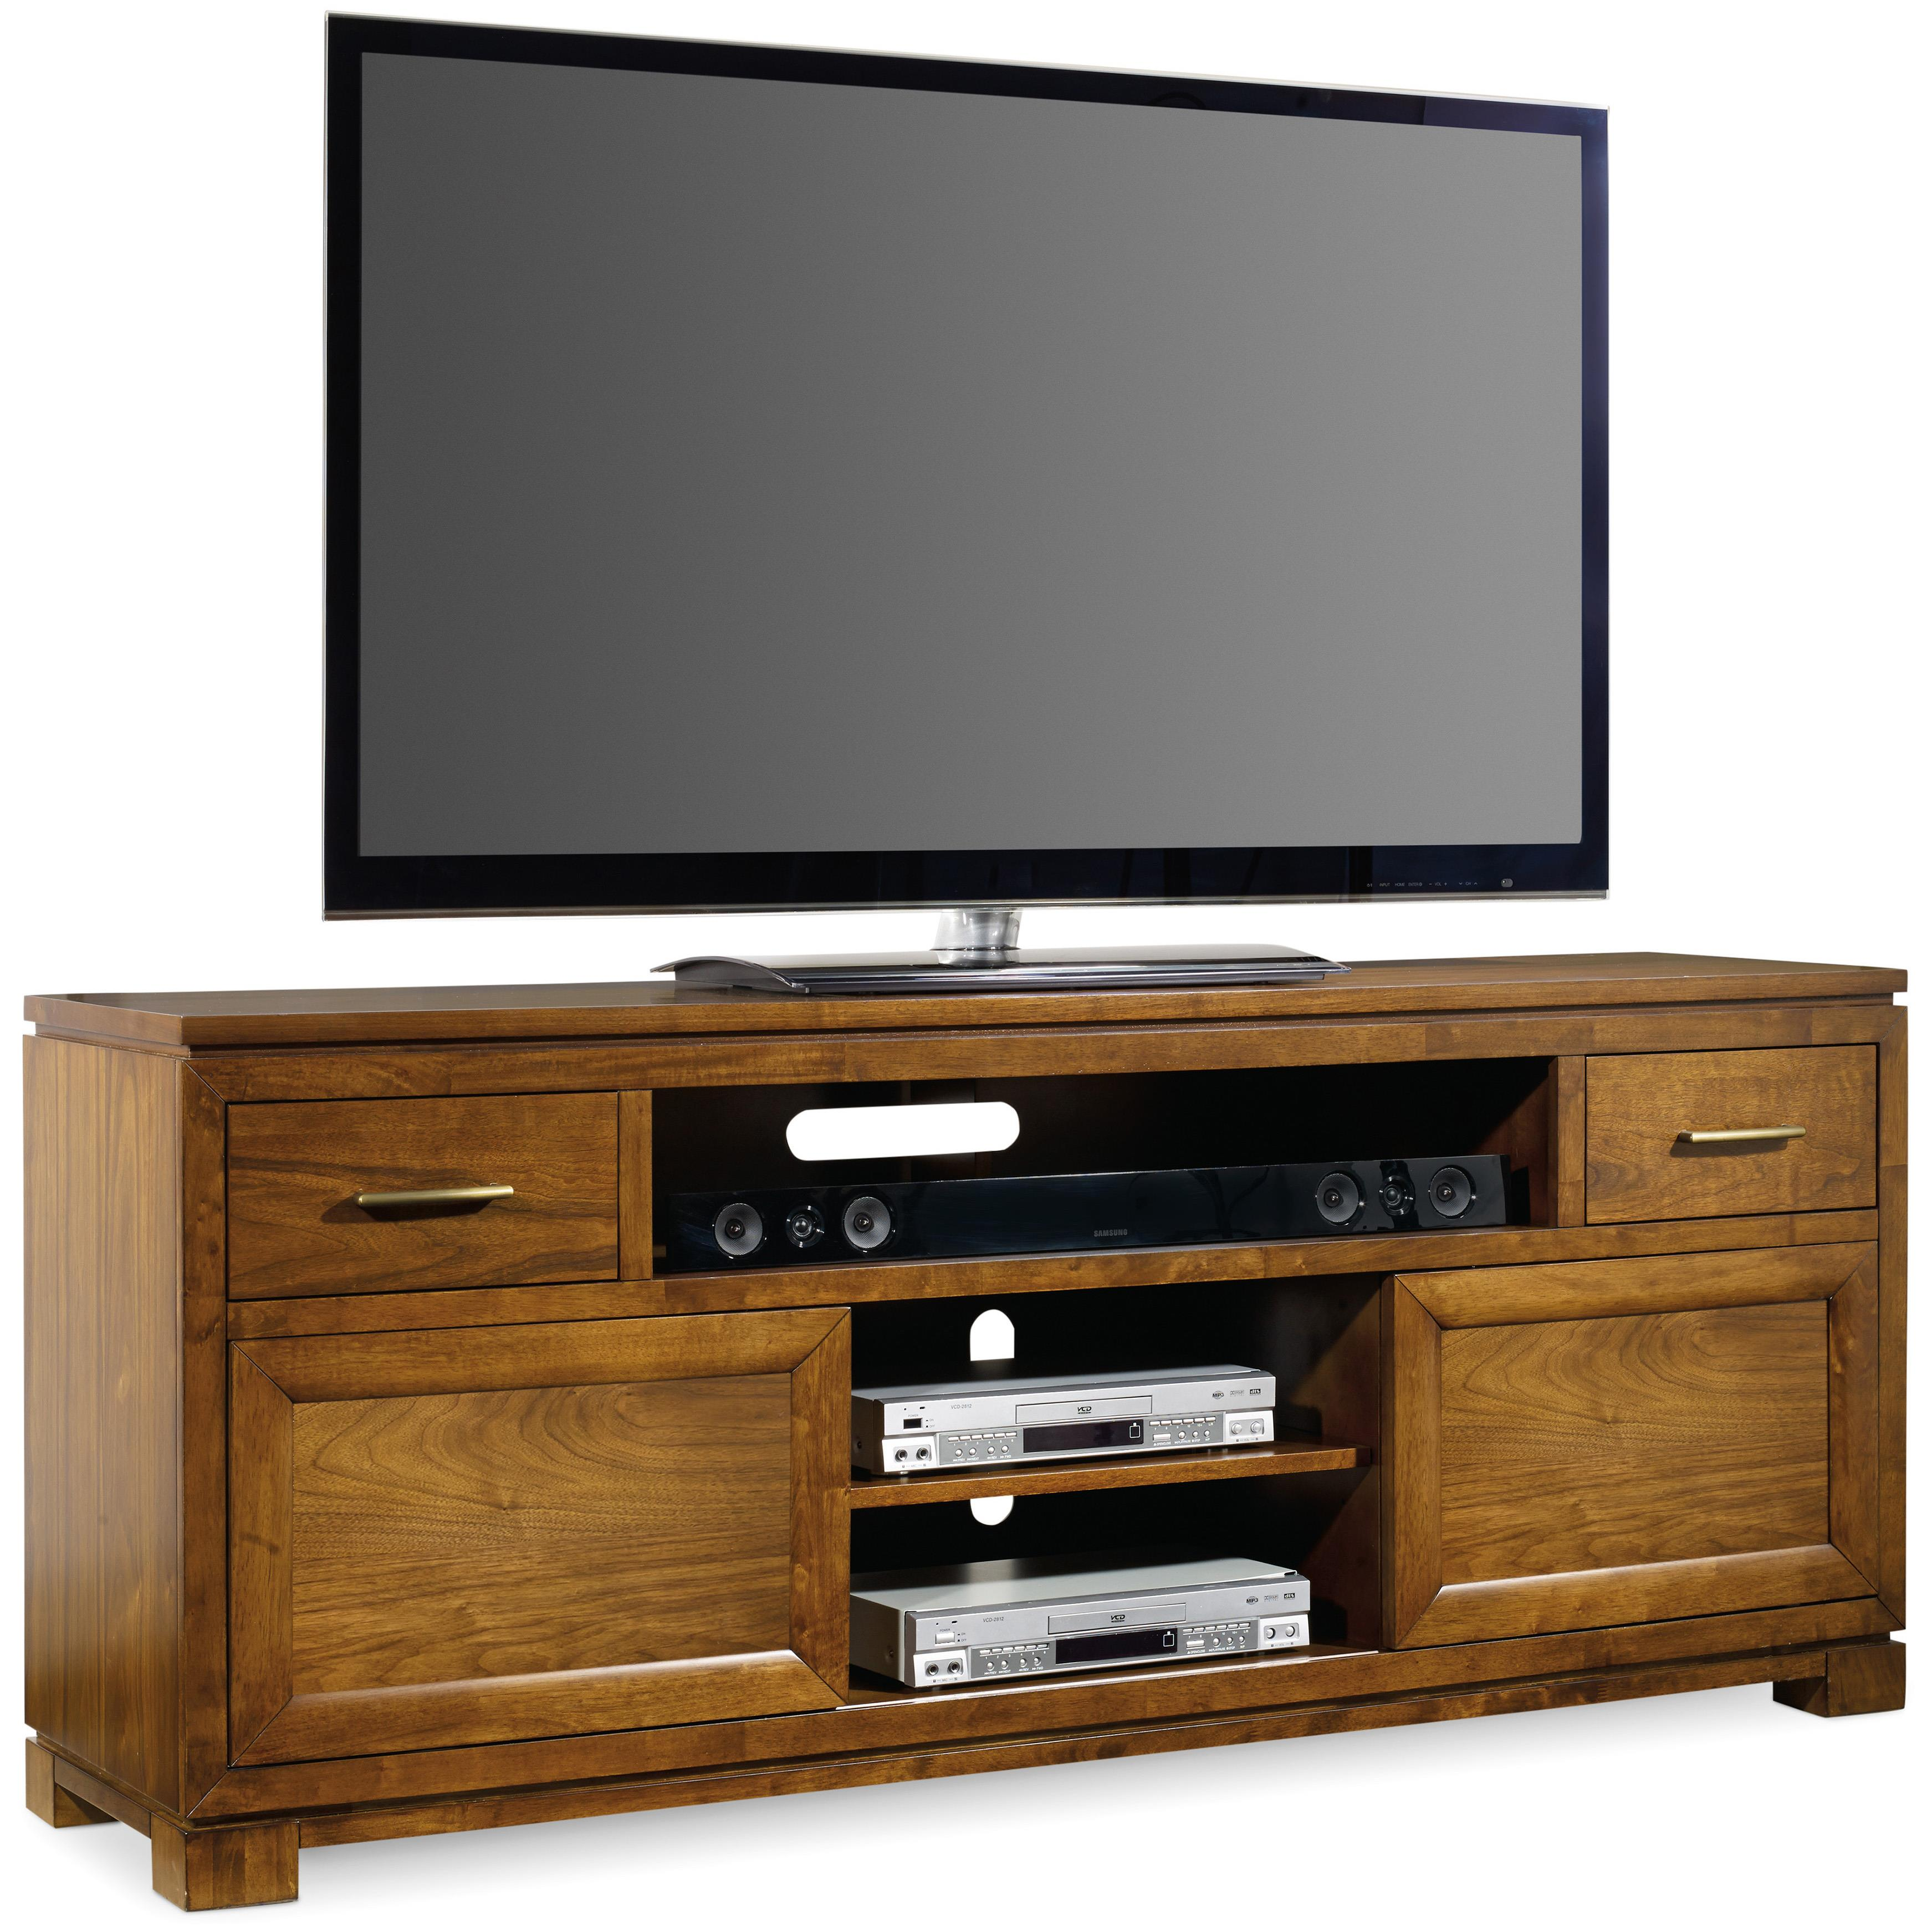 Hooker Furniture Viewpoint   72 Inch Entertainment Console - Item Number: 5328-55472